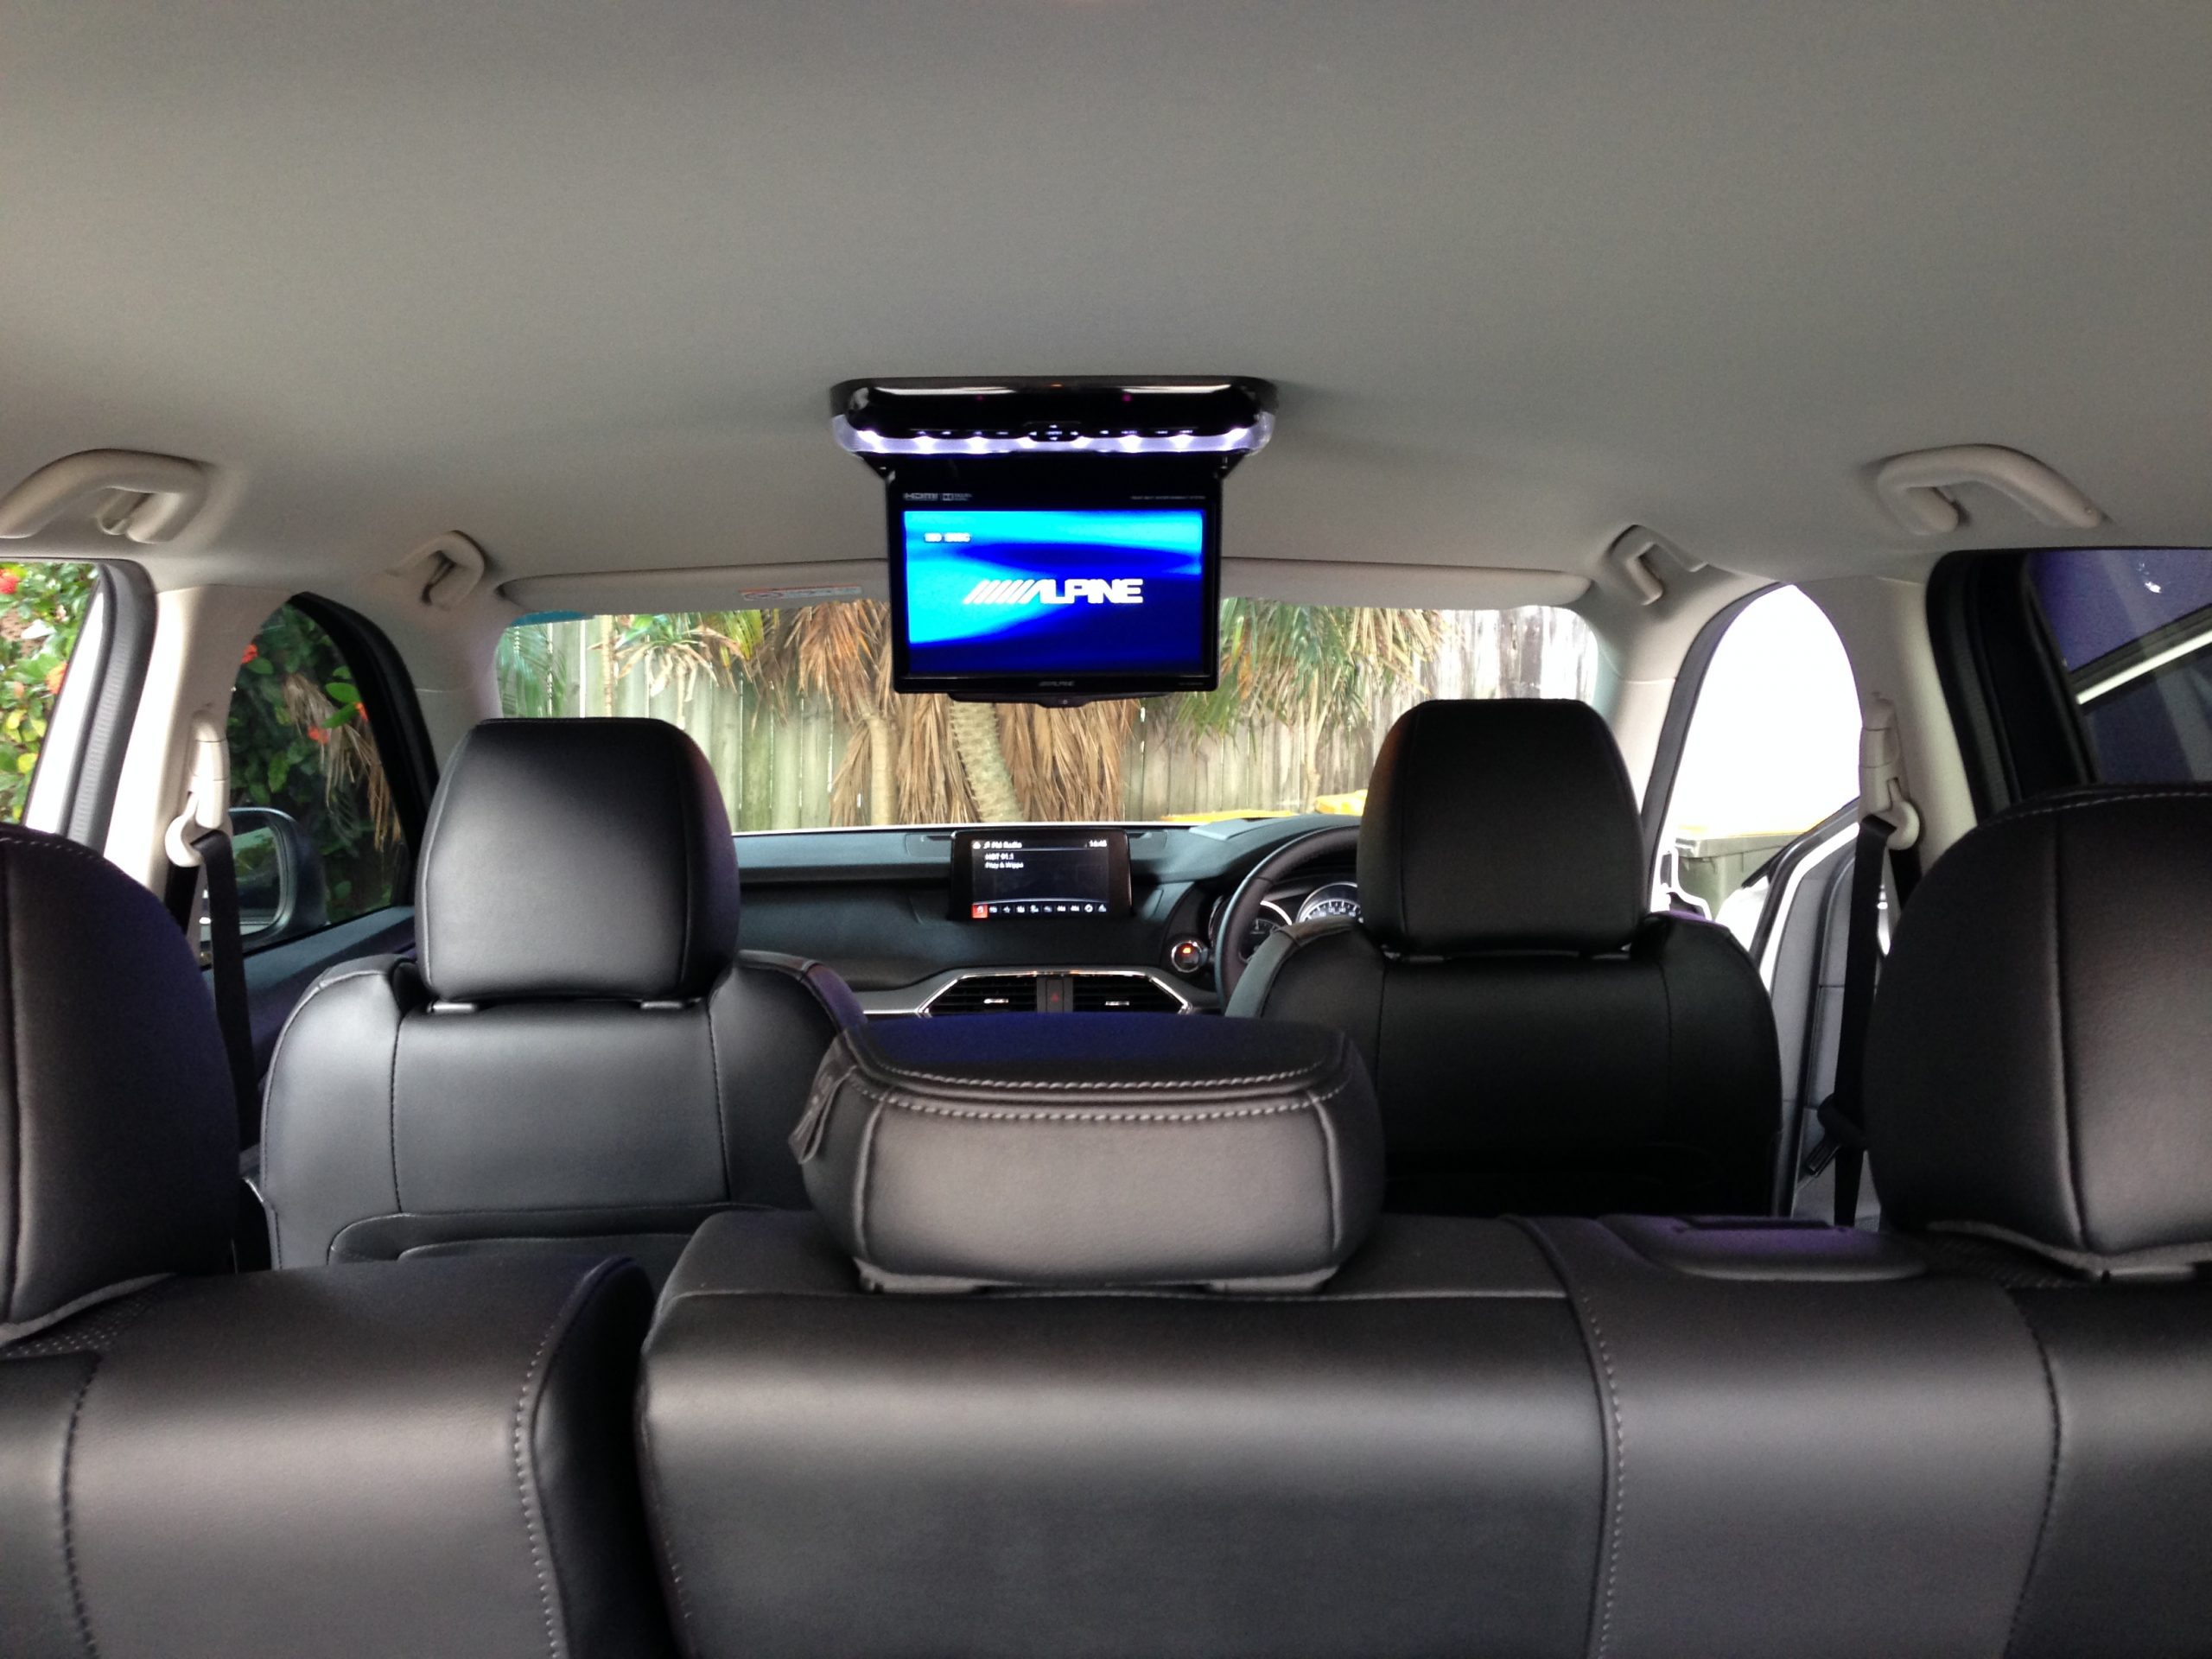 Alpine RSE Roof DVD player with 10″screen